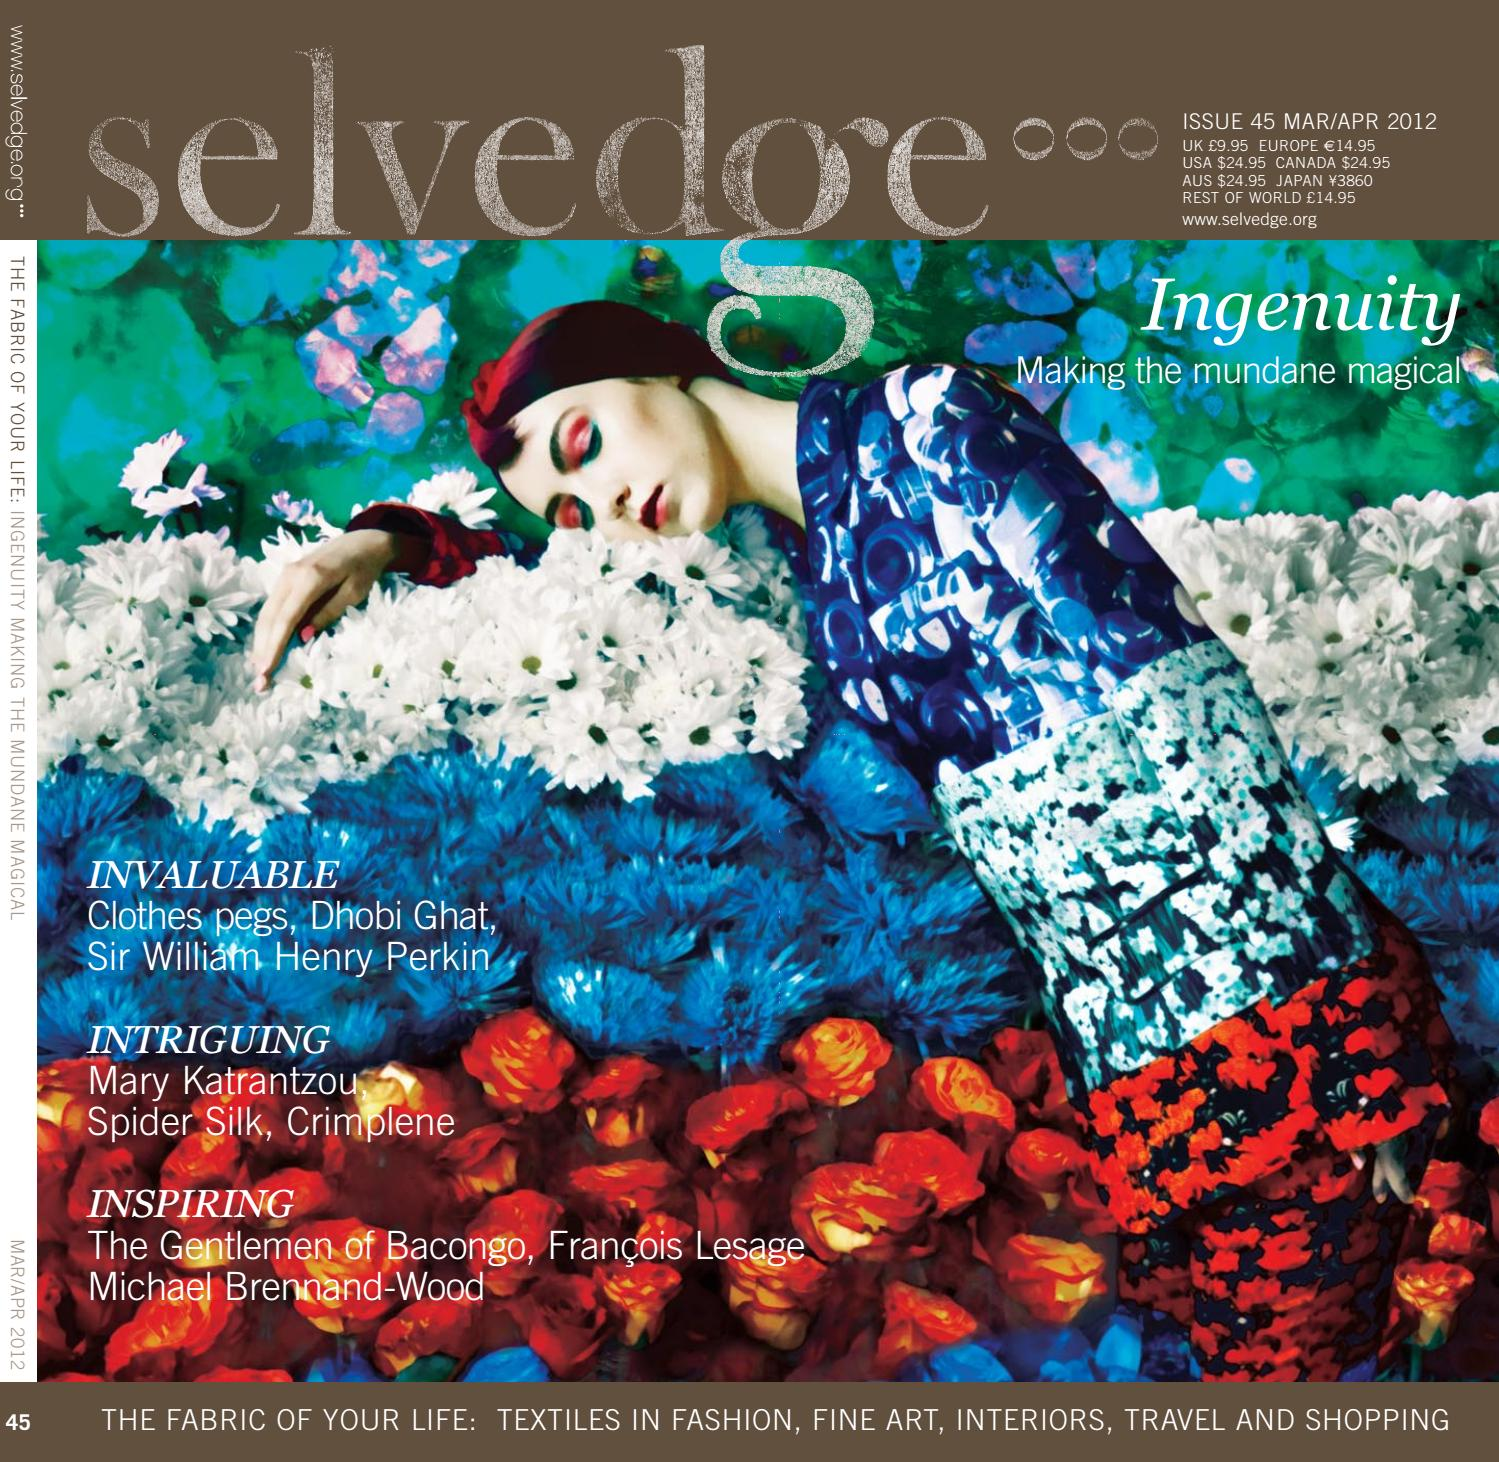 8d77b5ce 45 Ingenuity by Selvedge Magazine - issuu